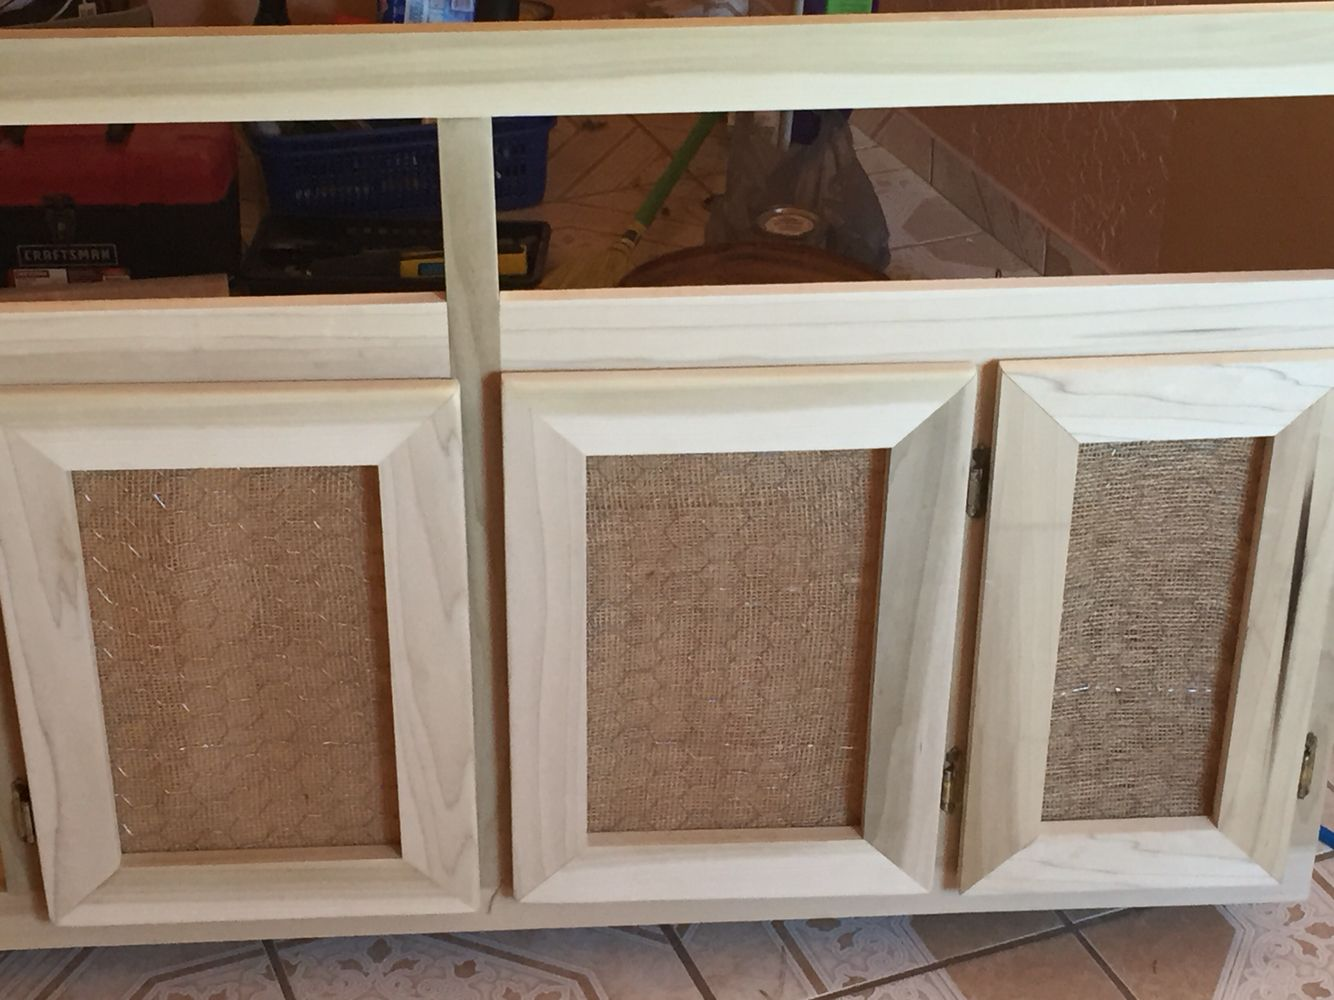 Merveilleux Diy Cabinet Door Used Burlap And Chicken Wire For A More Rustic Look Diy  Kitchen Cabinets